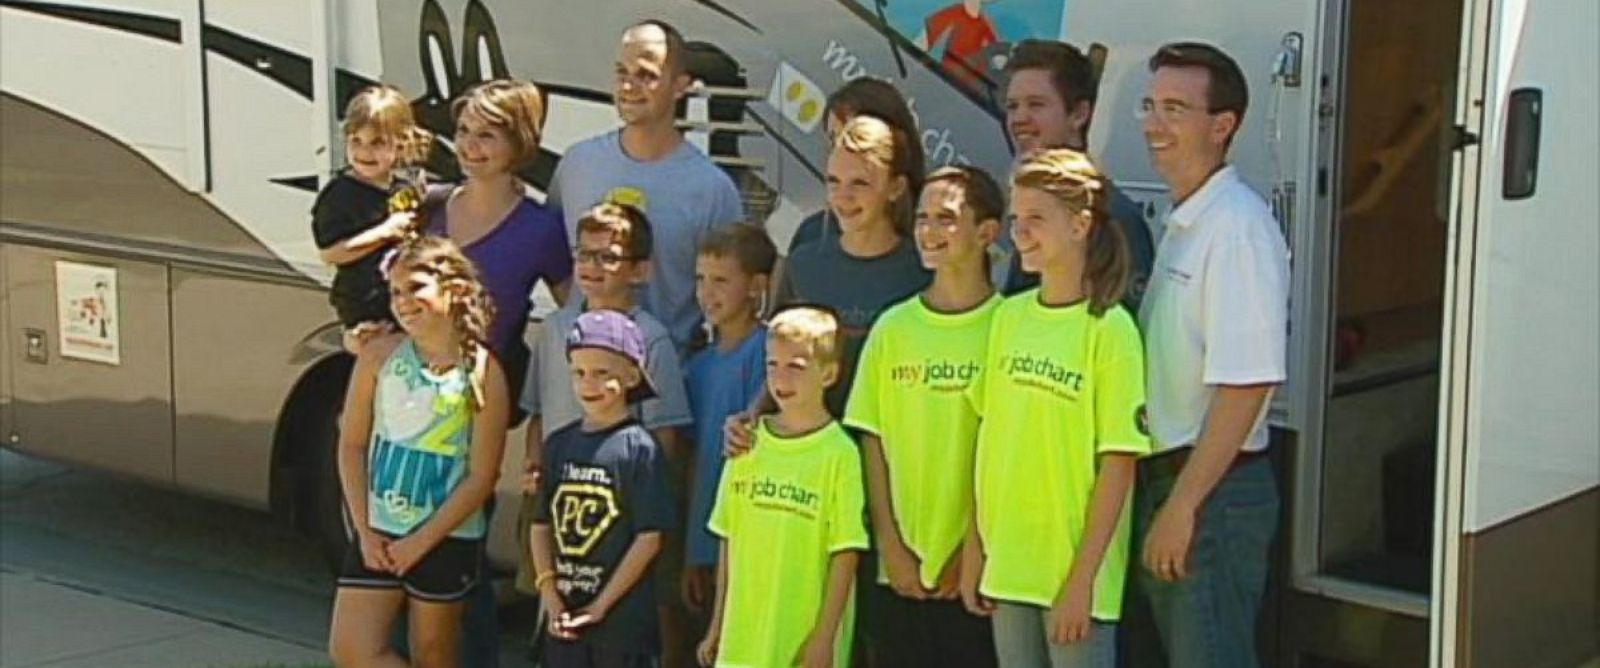 PHOTO: A family in Arizona is helping strangers during their summer vacation.